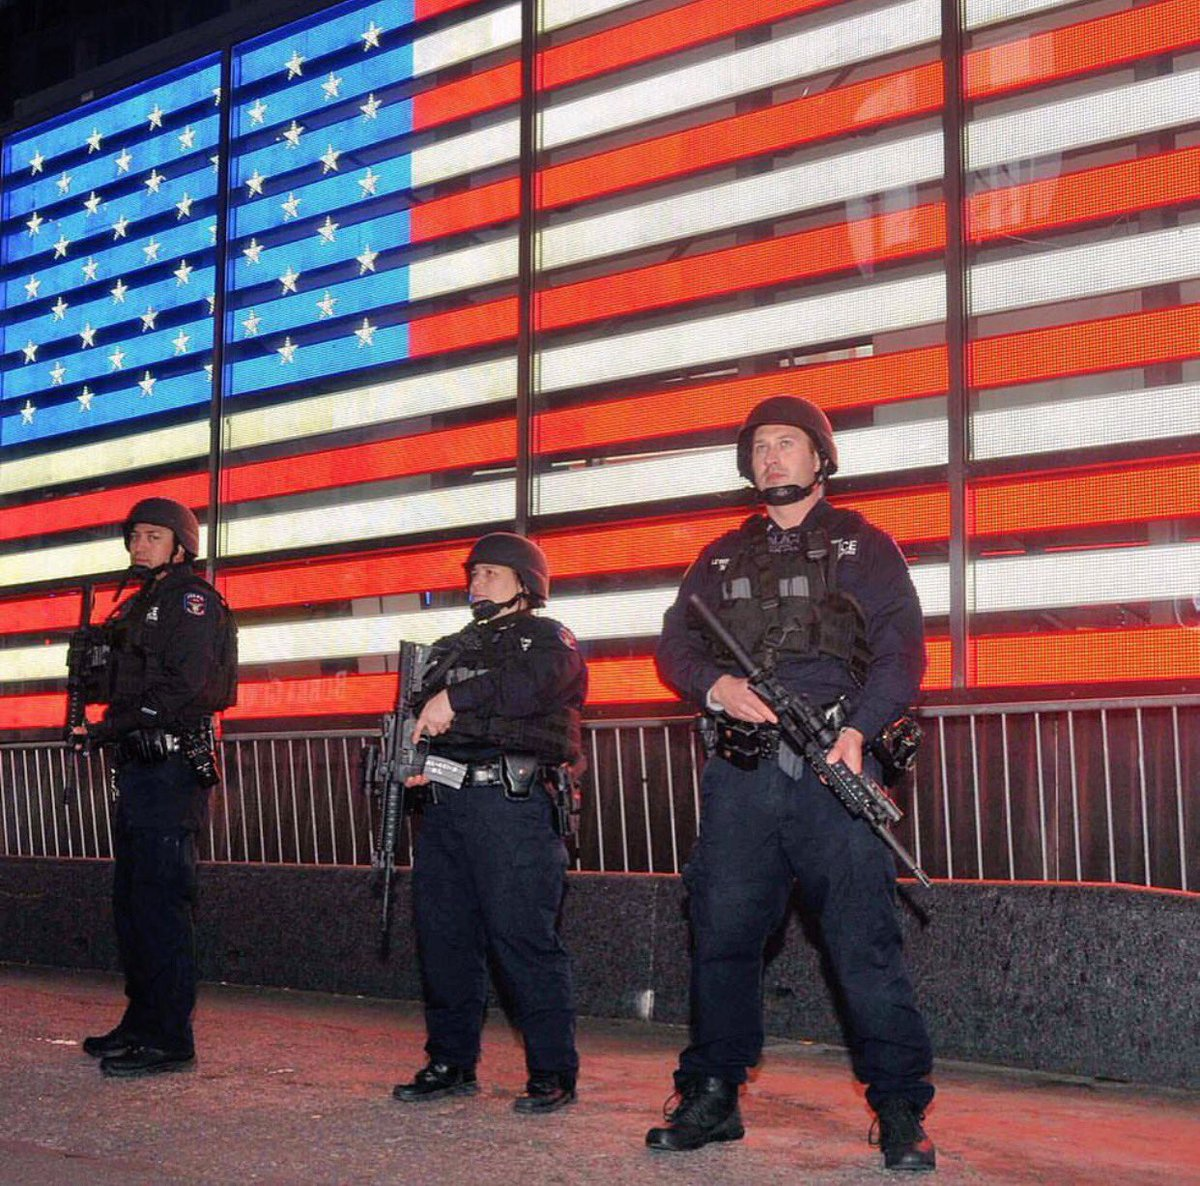 #Election2016 and 365 days a year the NYPD is keeping NYC safe -- #NYPDprotecting